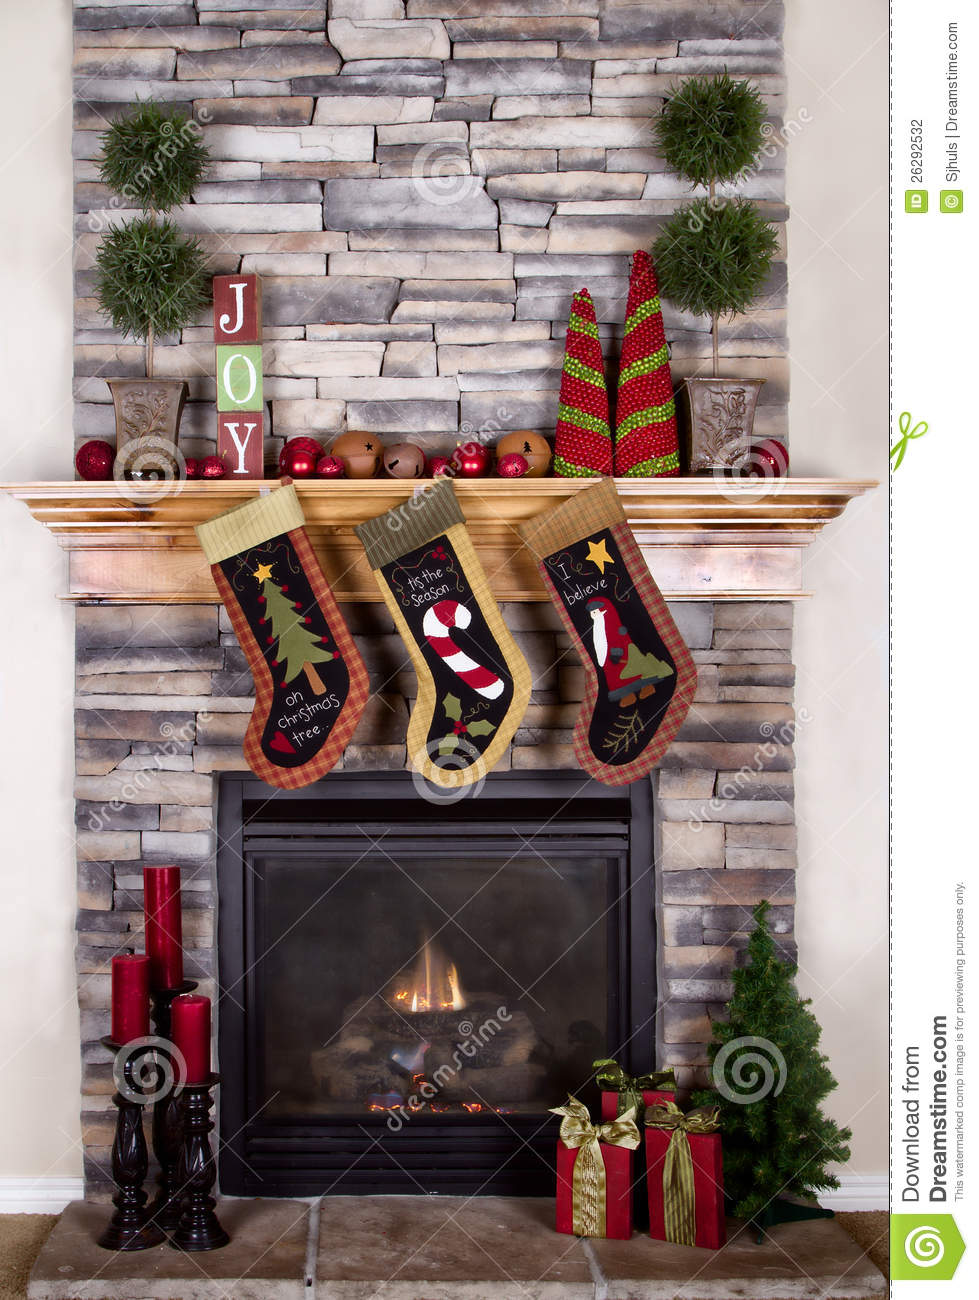 Christmas Stockings Hanging From Fireplace Stock ...